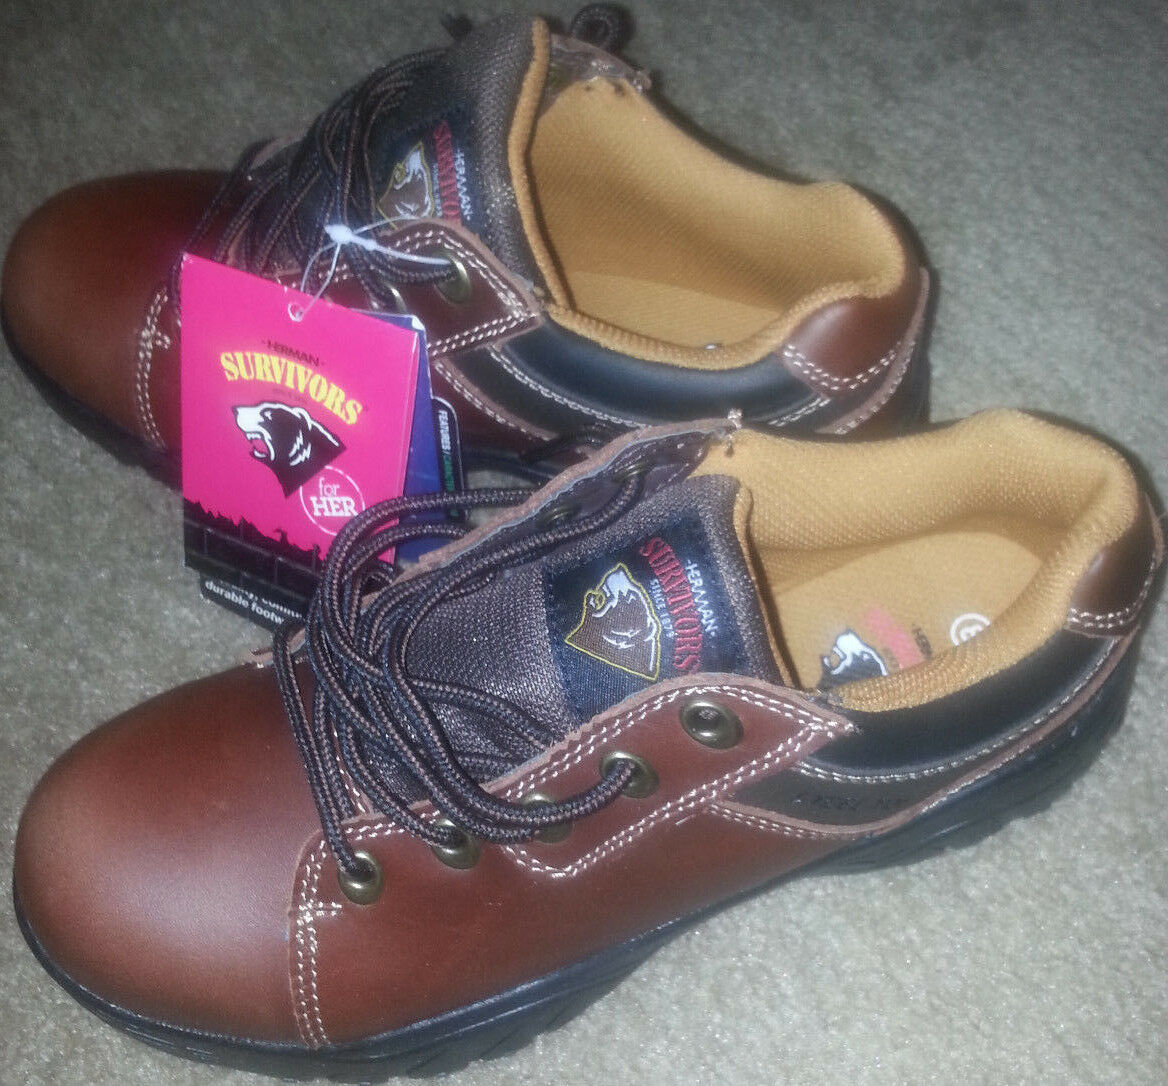 NEW HERMAN SURVIVORS WINTER/FALL LEATHER BOOTS 8 SZ 8 BOOTS US 39 1/2 EUR WOMENS MENS 6d9f76